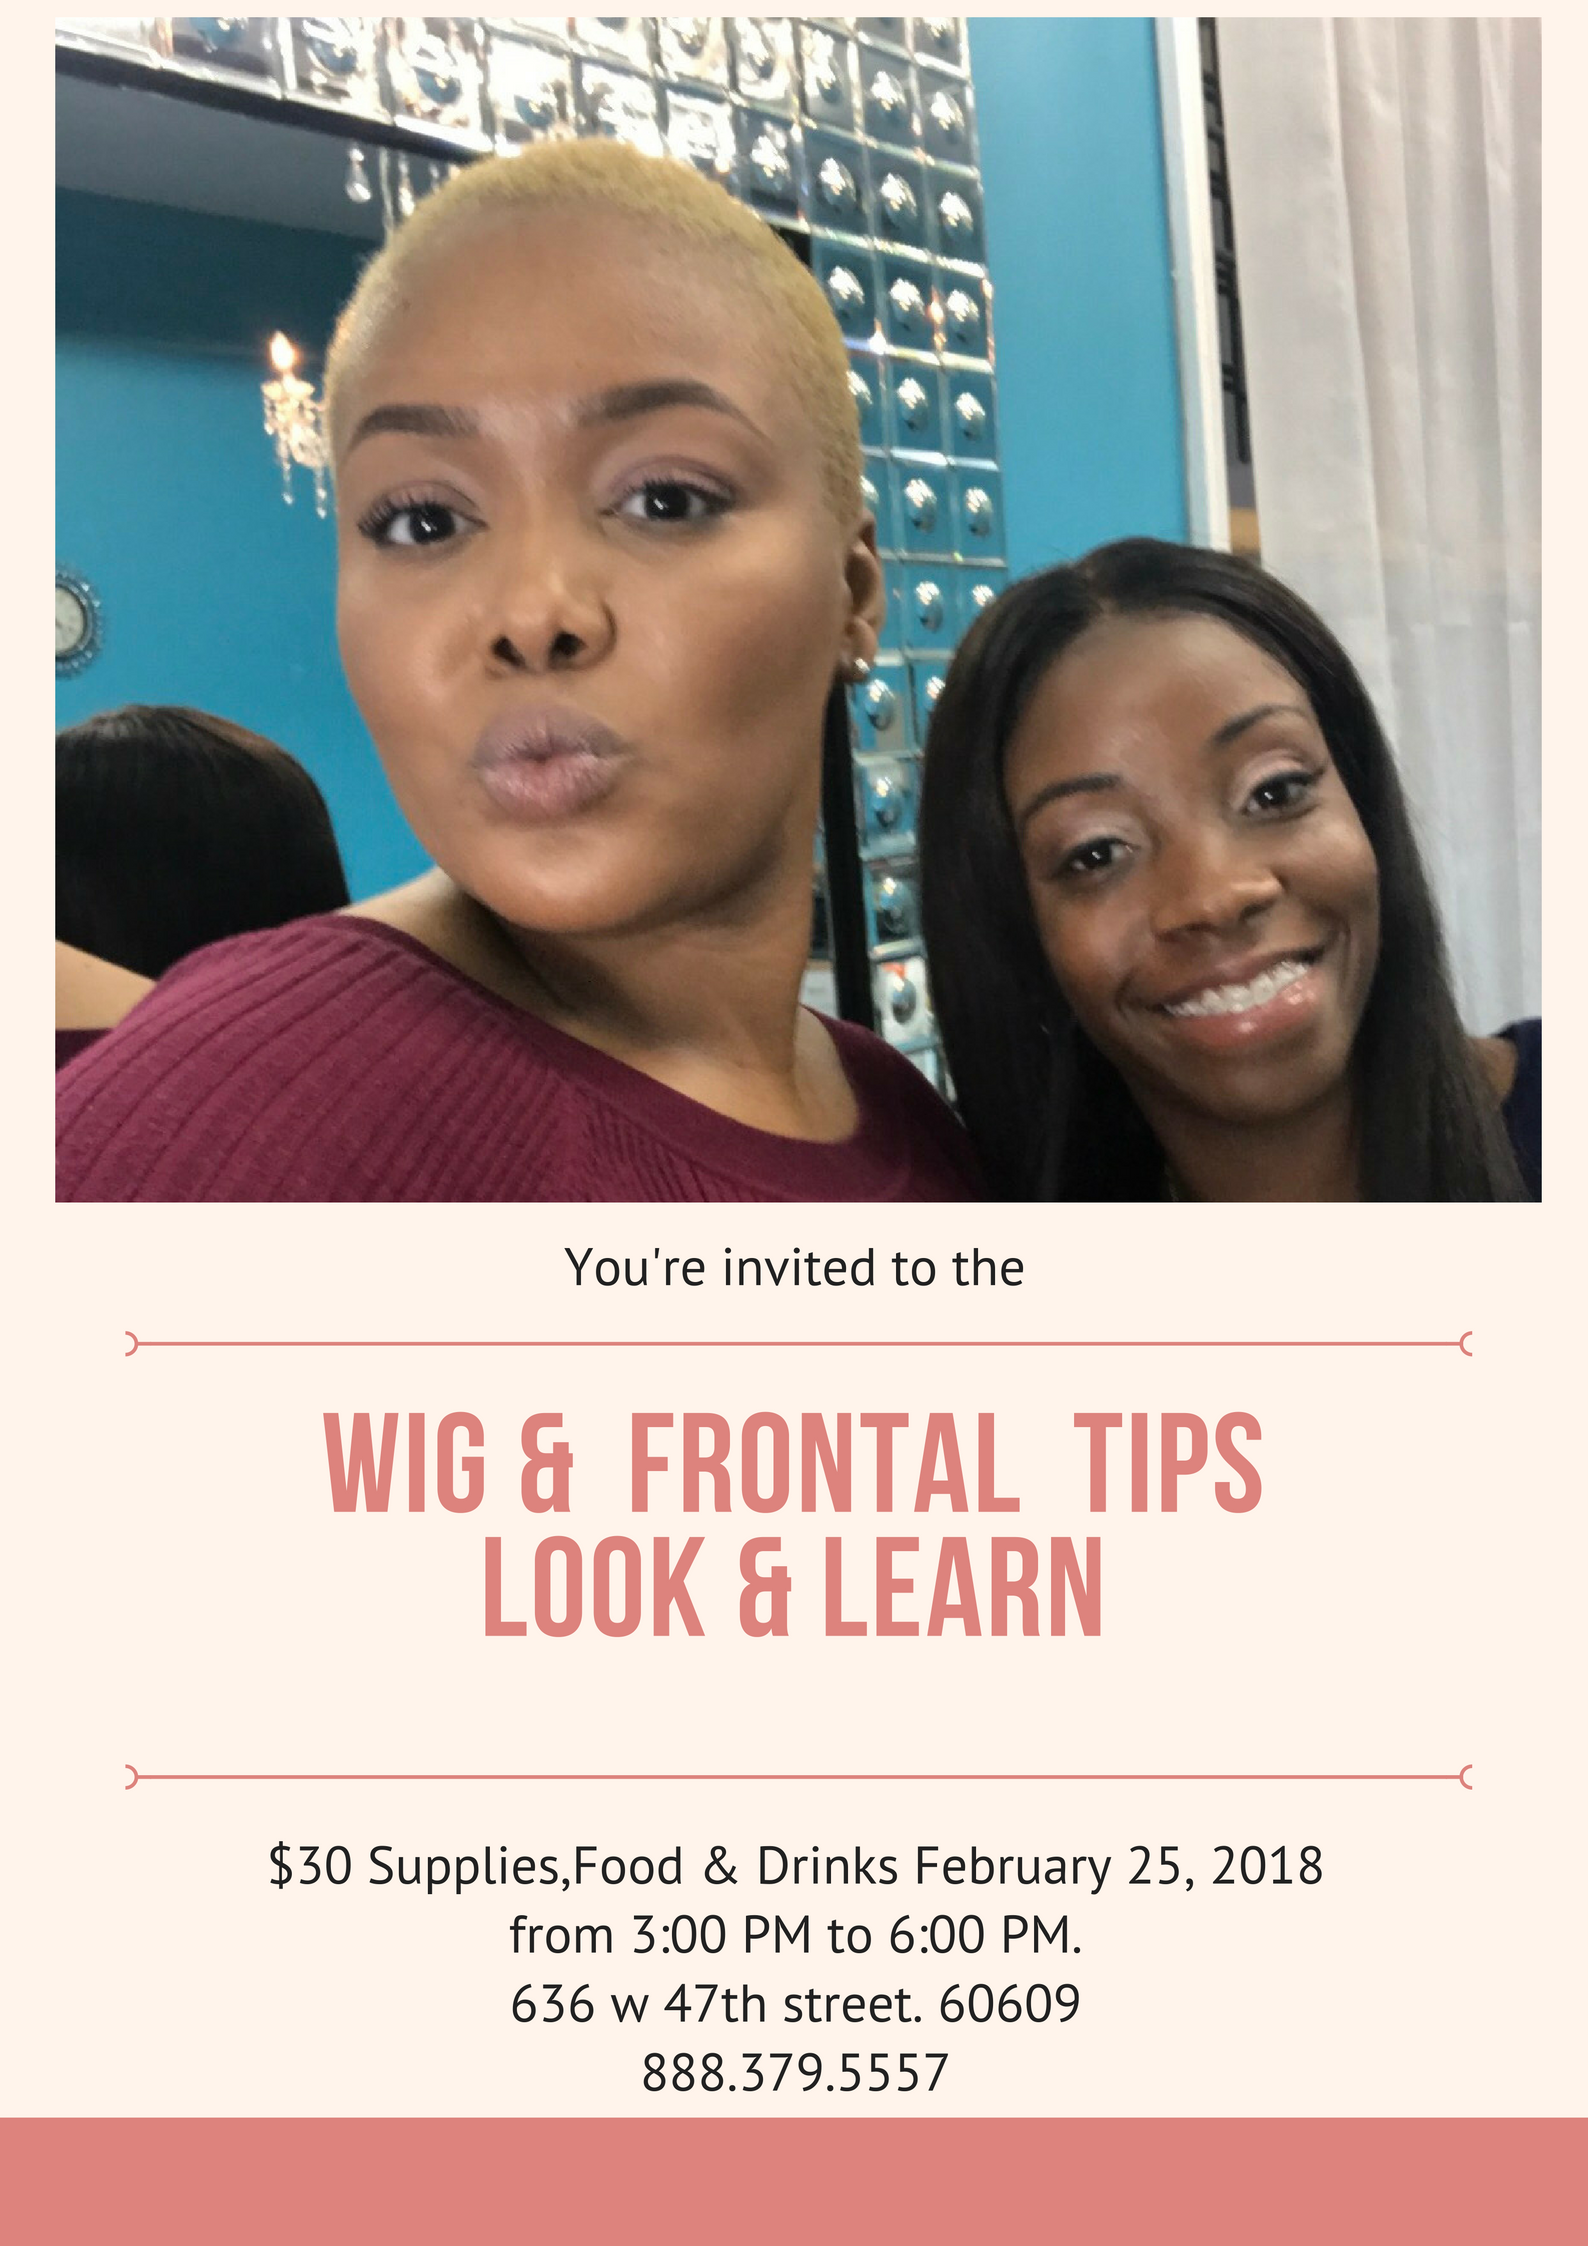 Lace Frontal & Wig Tips Look & Learn